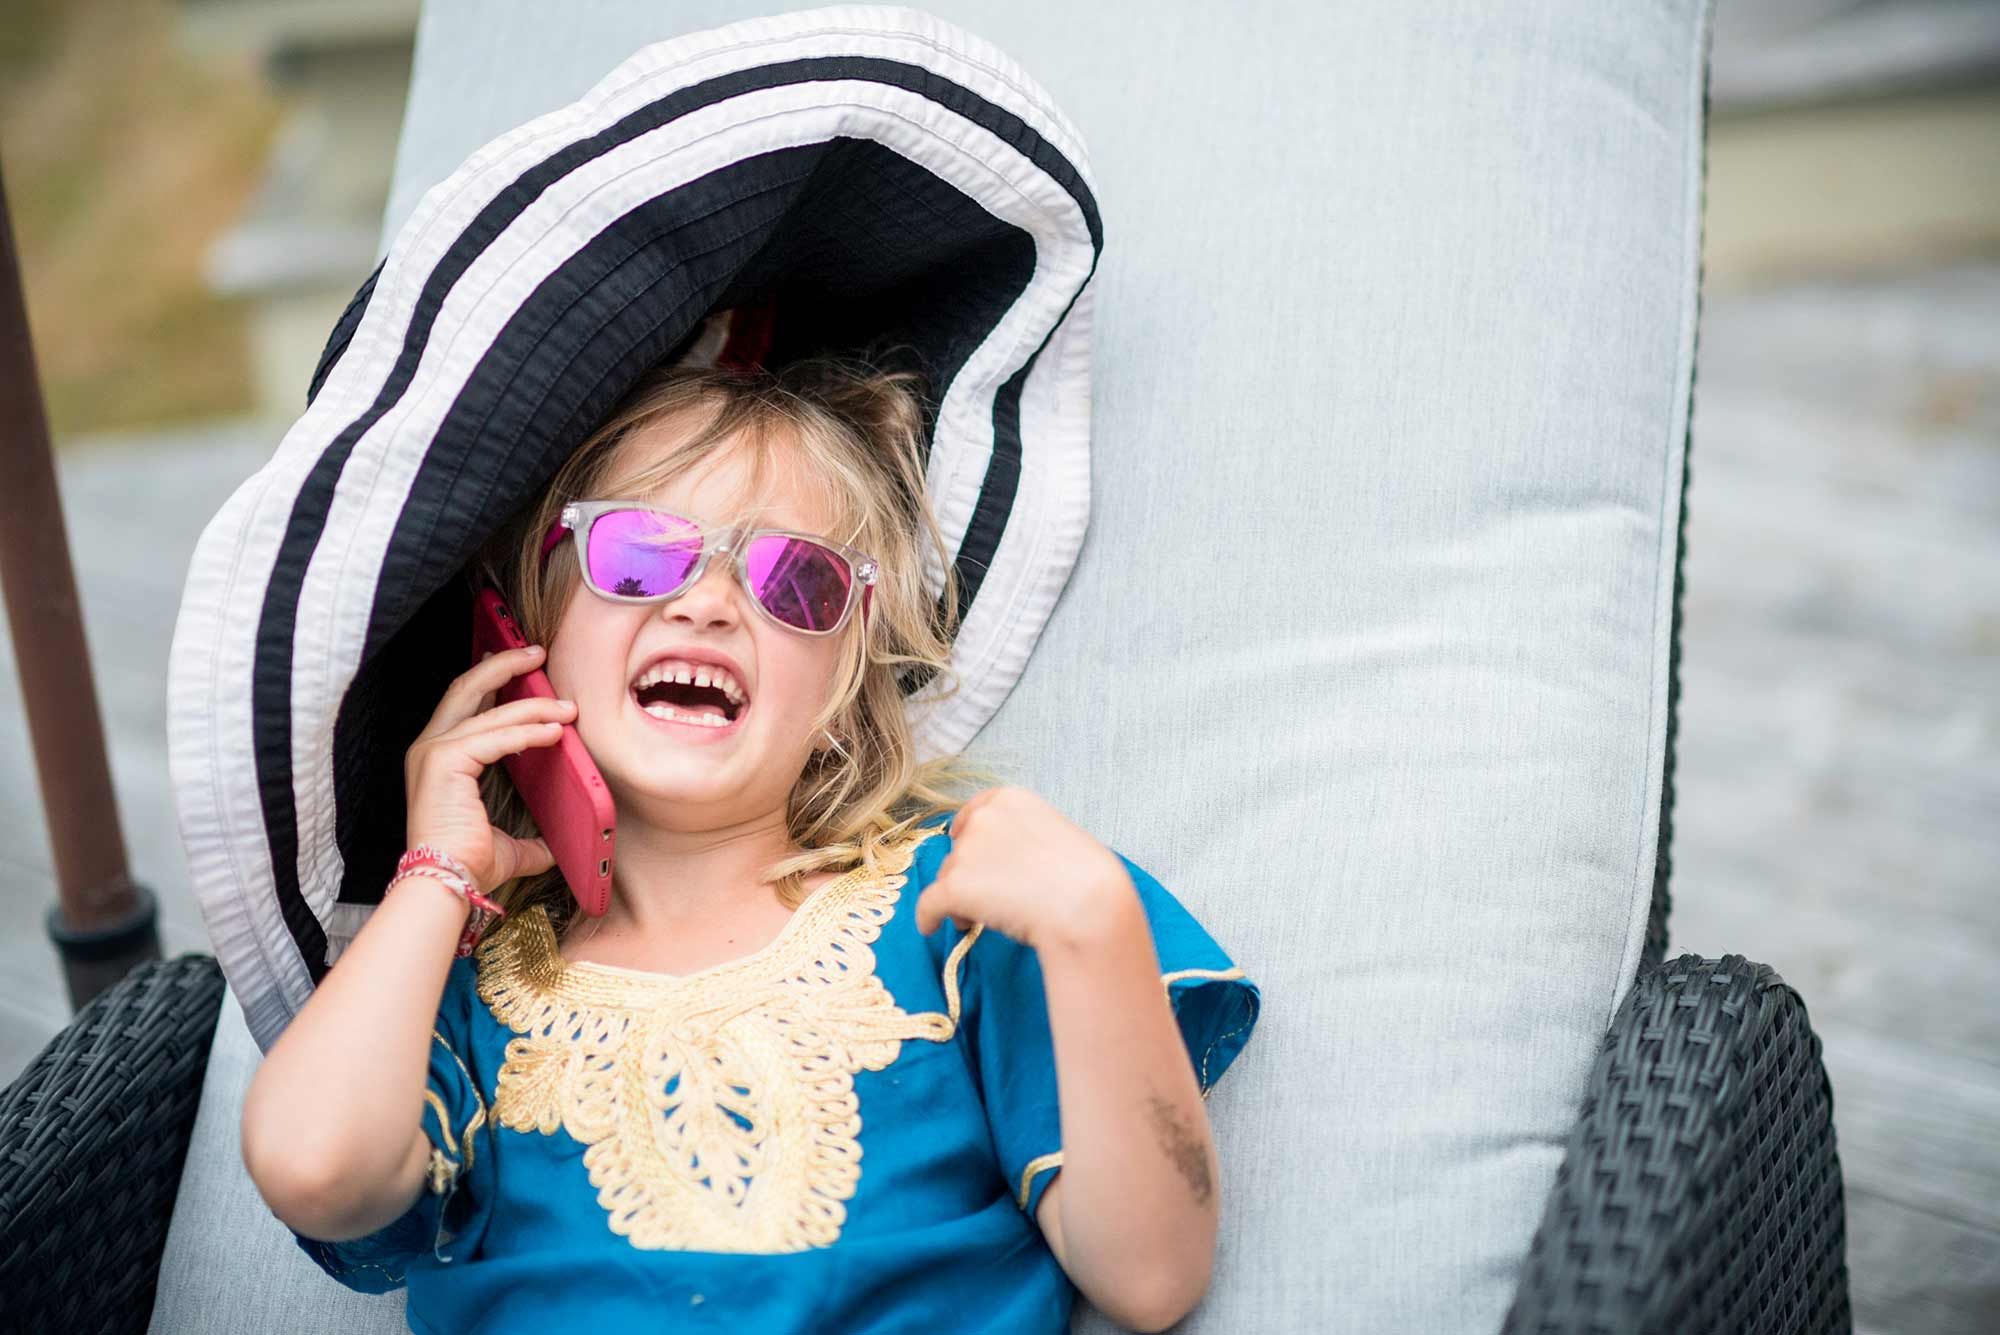 Little girl wearing sunglasses and big hat